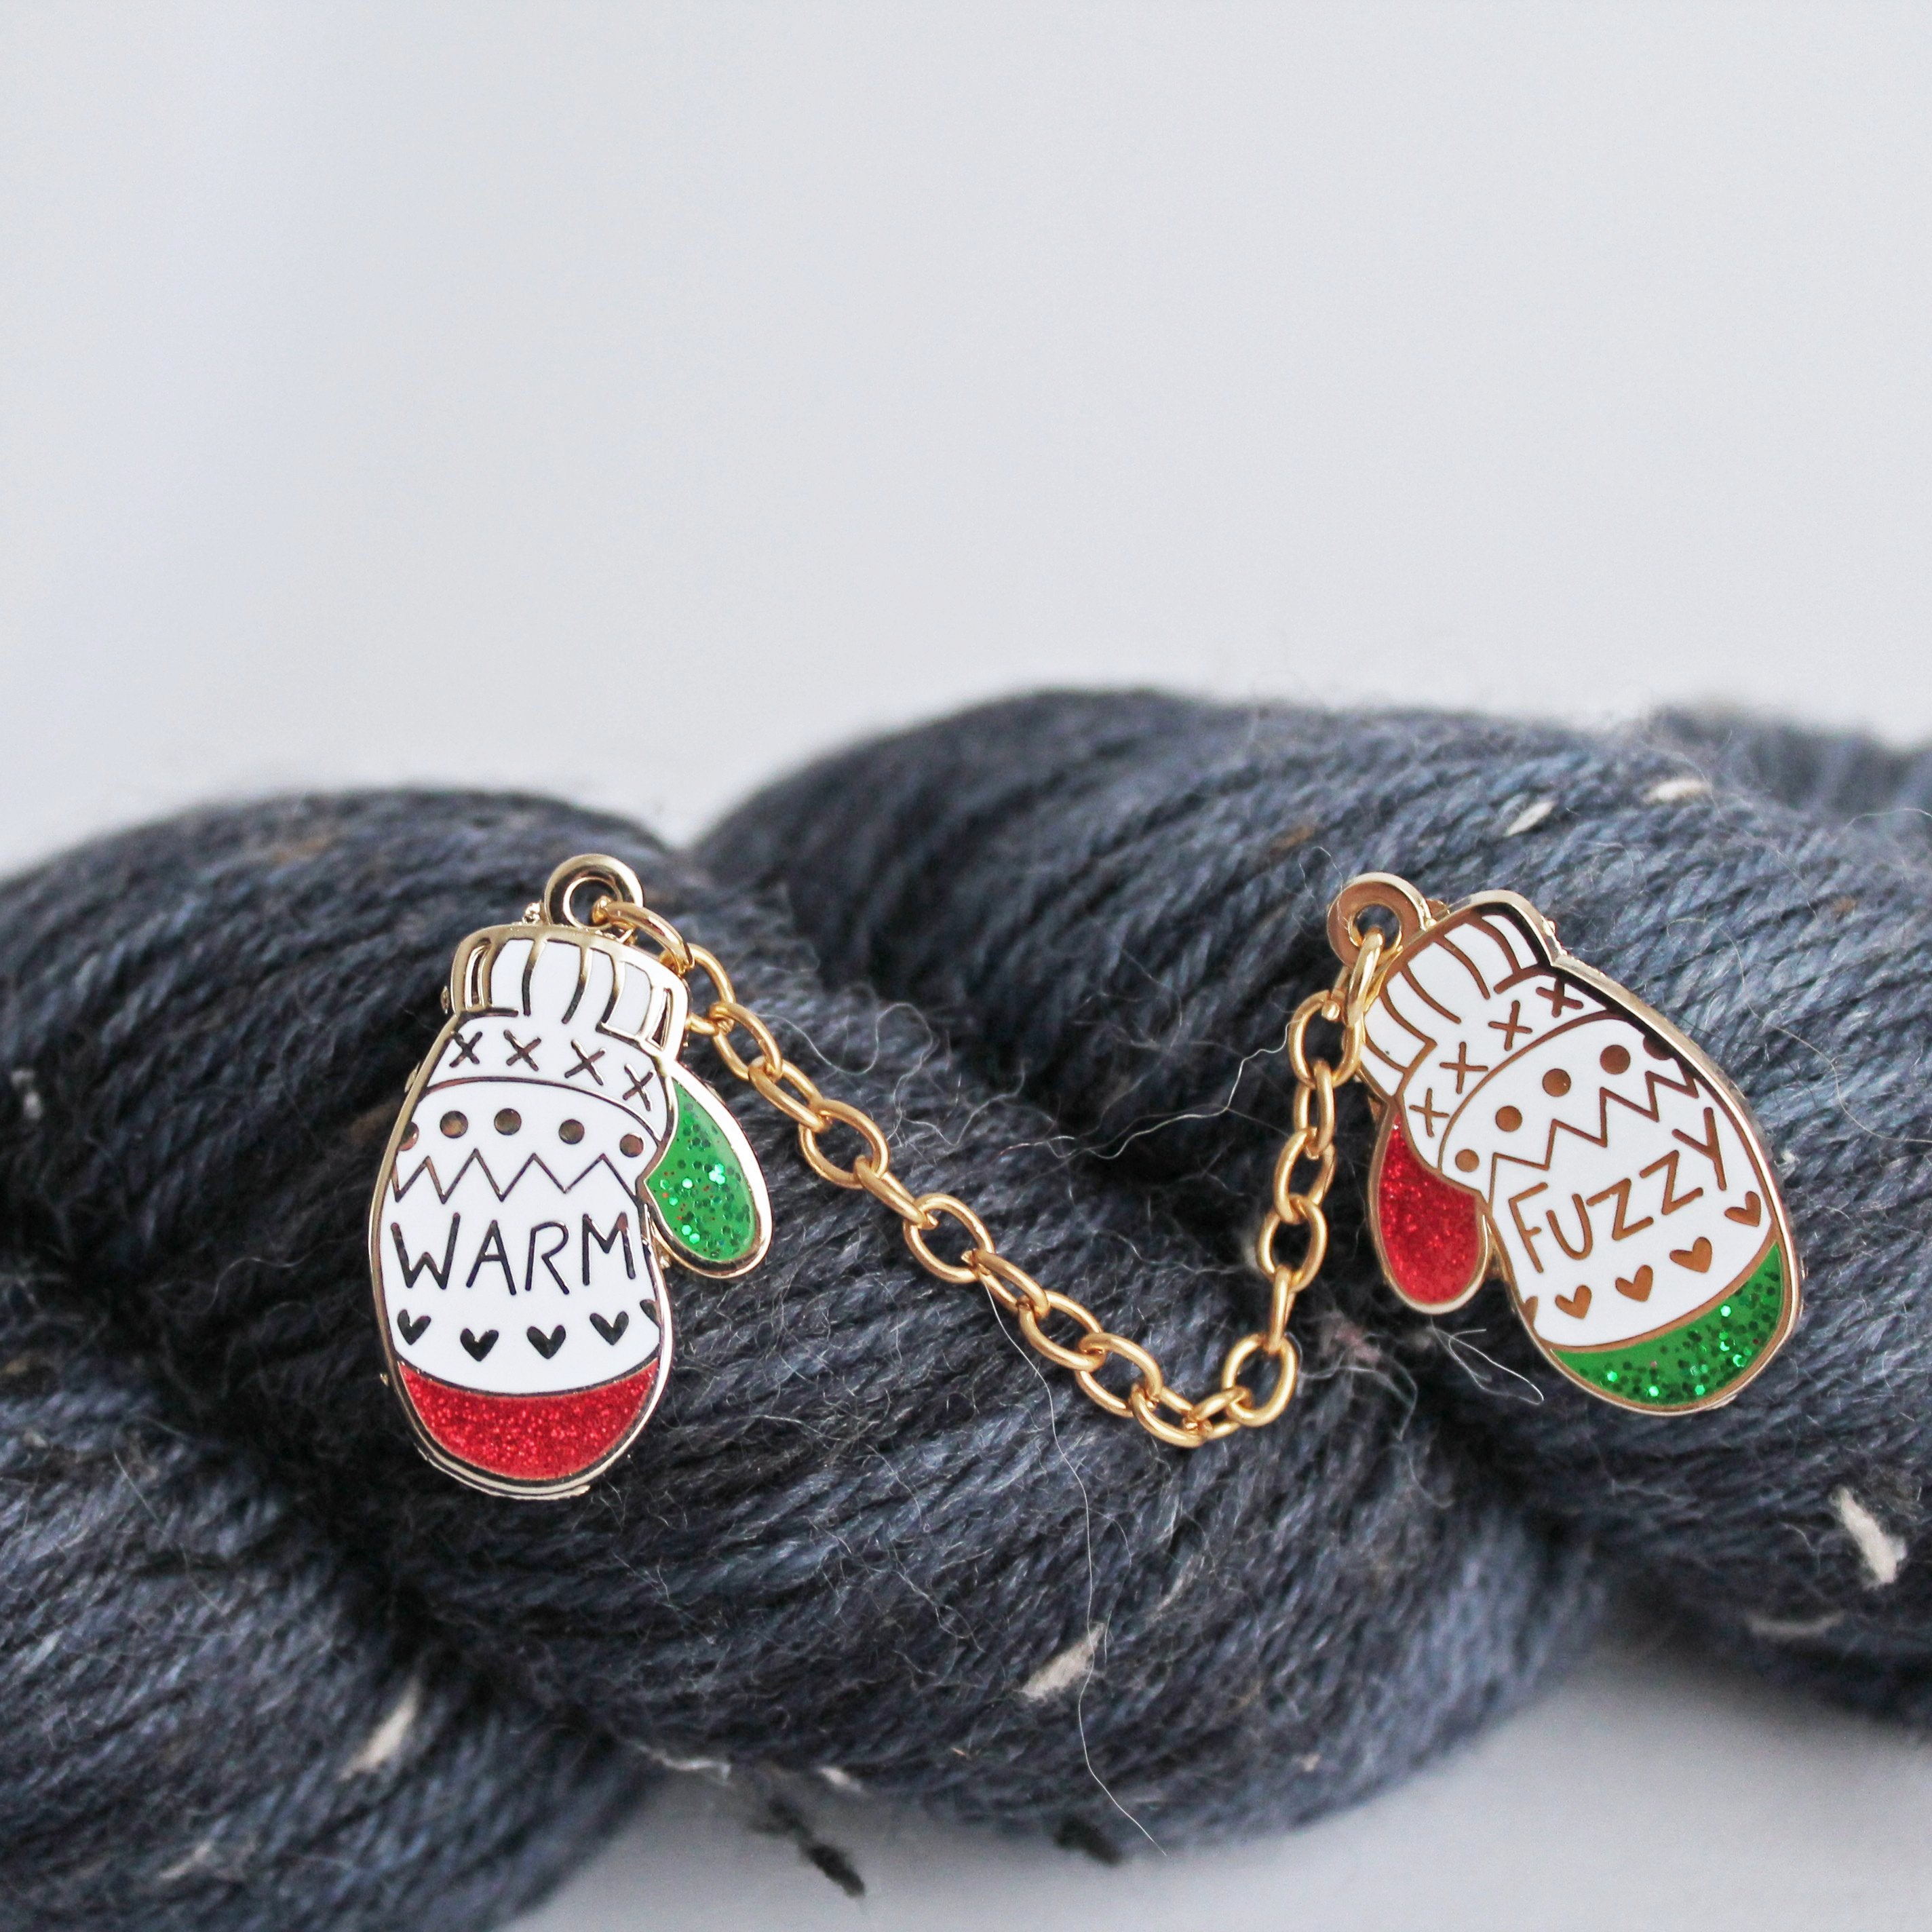 Holiday Edition 'Warm & Fuzzy' Mittens Enamel Pin